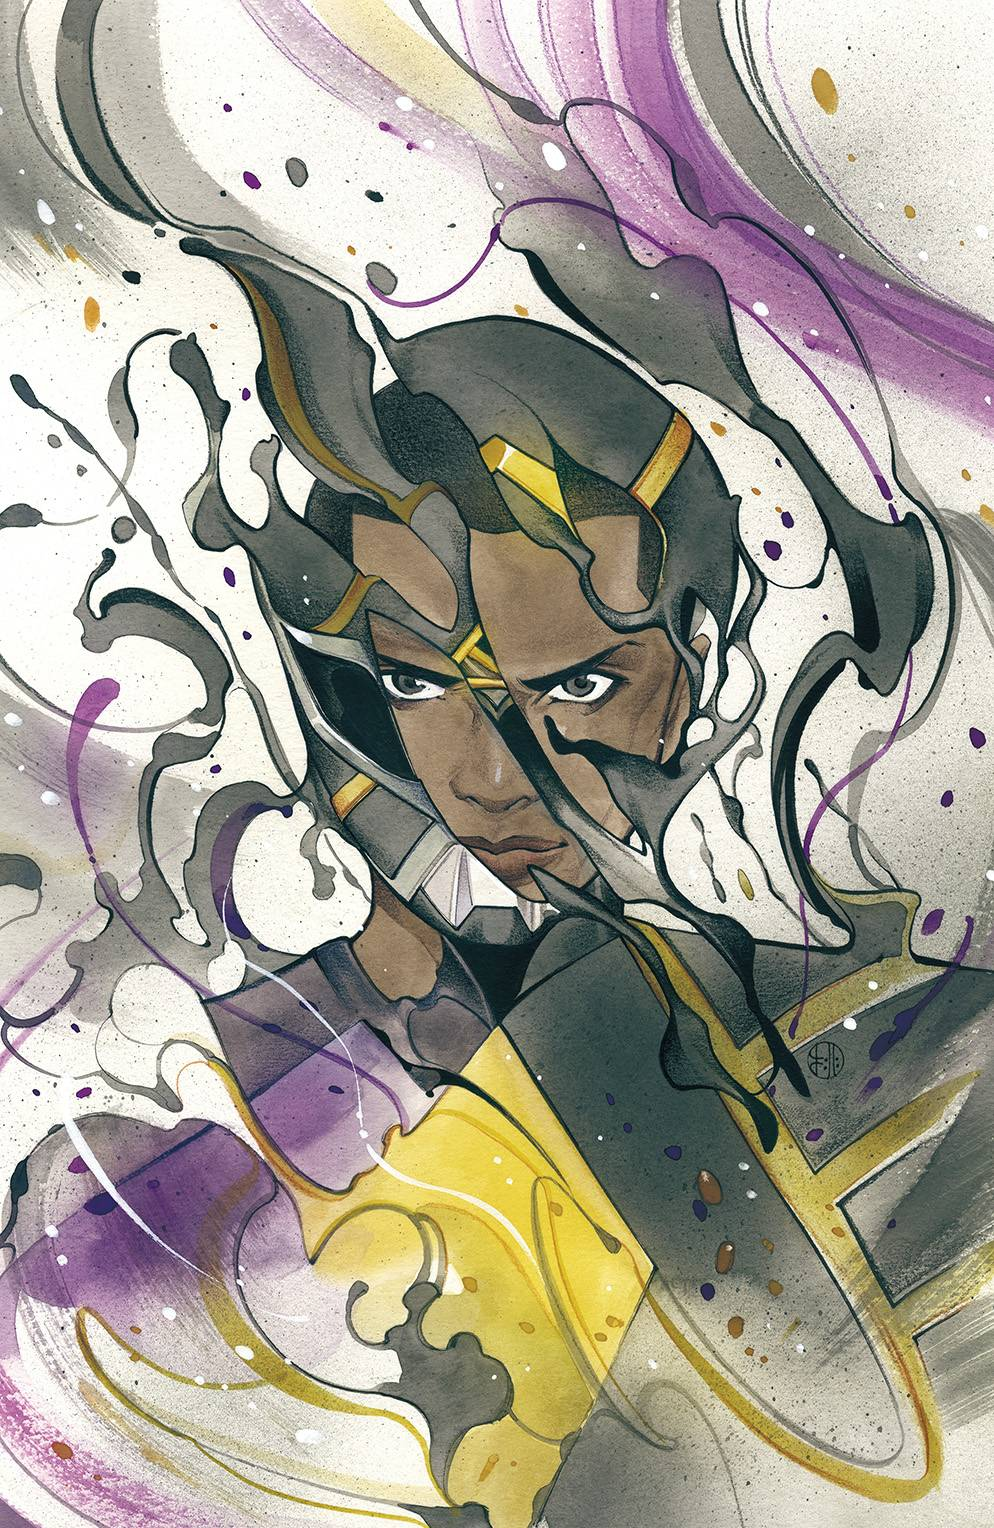 STL180049 ComicList Previews: POWER RANGERS #5